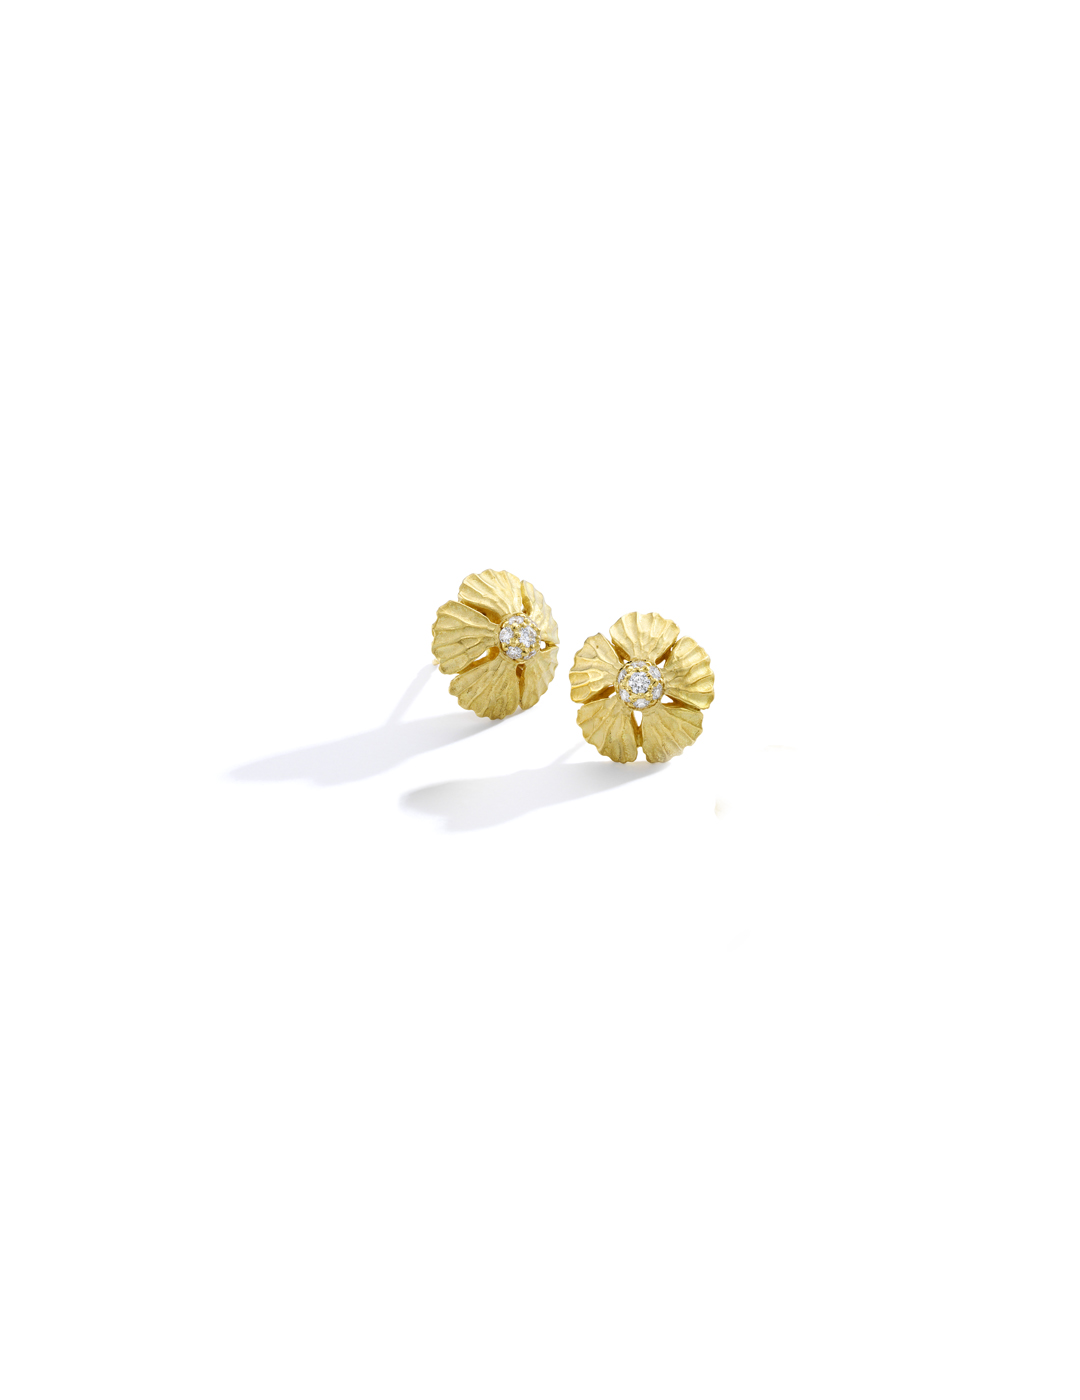 mish_products_earrings_StrawFlwr-Dome-Lg Stud-ER-1